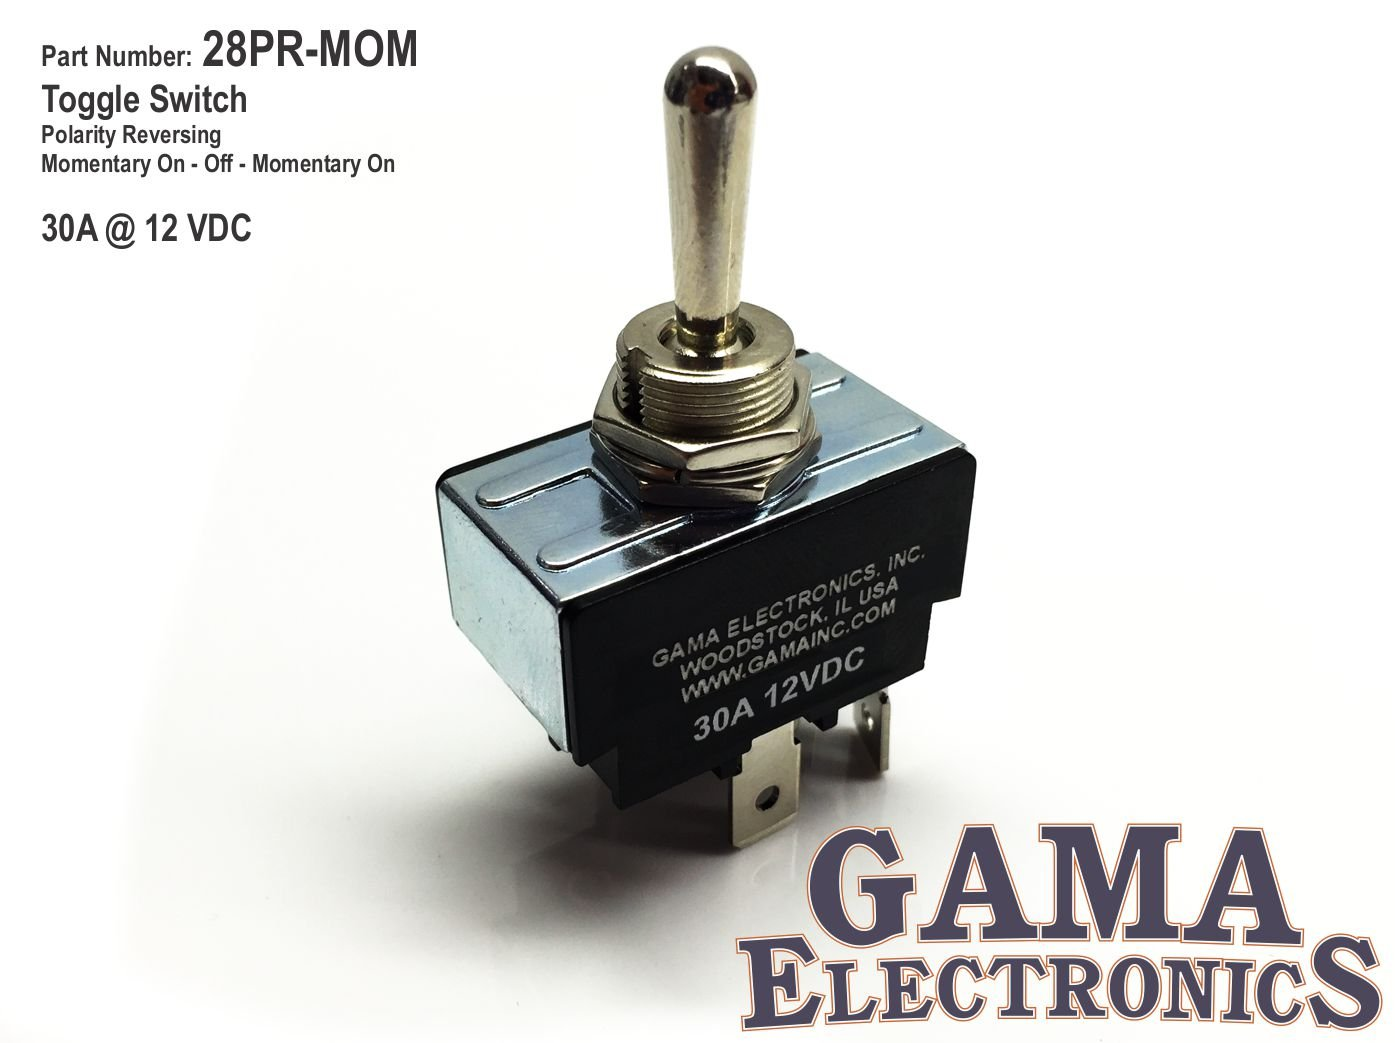 Gama Electronics 30 Amp Toggle Switch 3 Position Harbor Freight Wiring Diagram Reversing Polarity Dc Motor Control Momentary Automotive